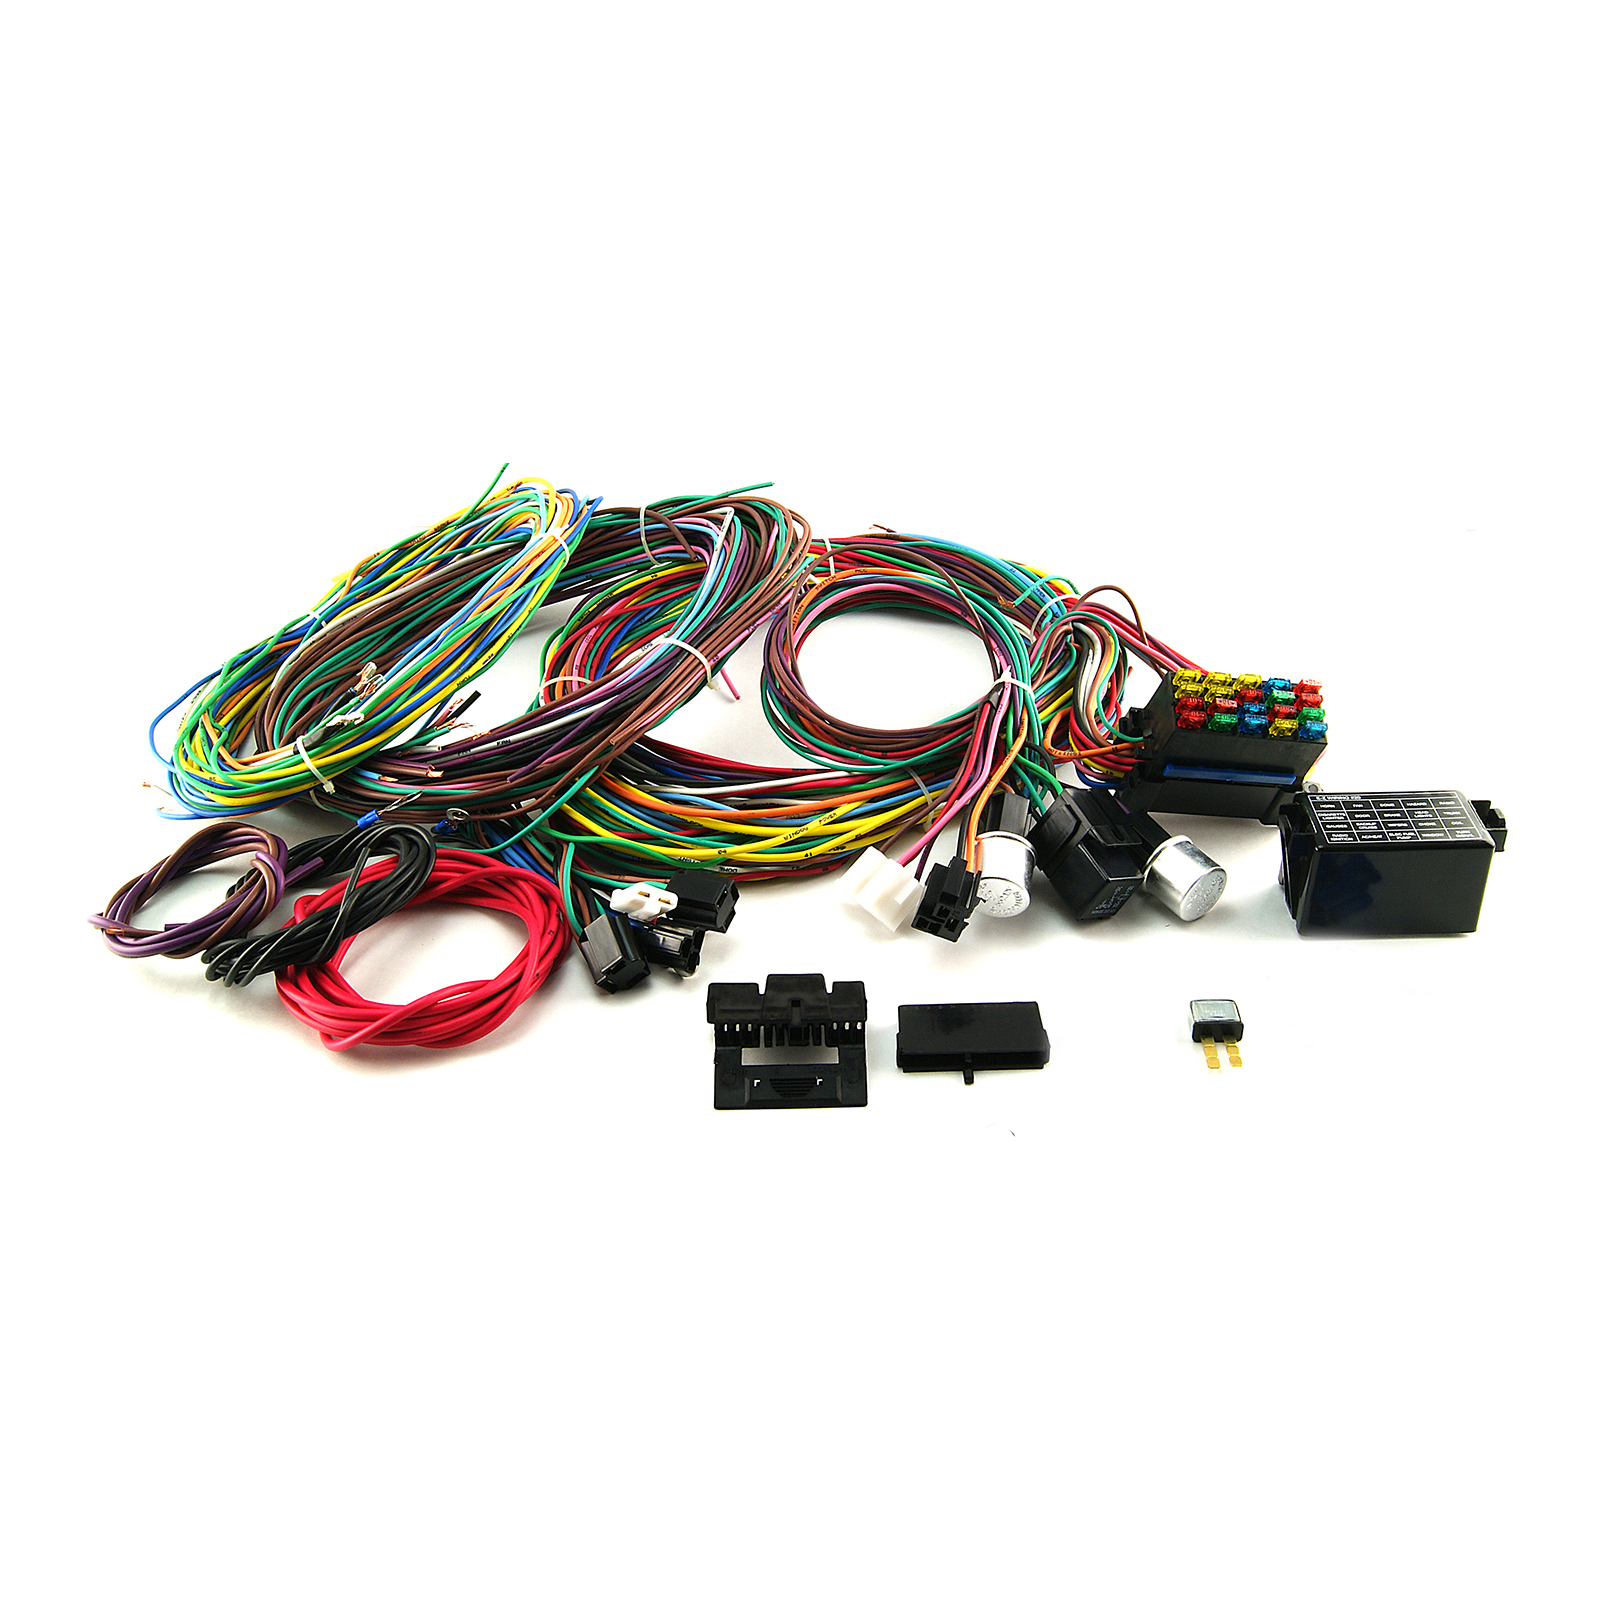 Wiring Harness Making Supplies : Universal circuit wiring harness kit street rod hot